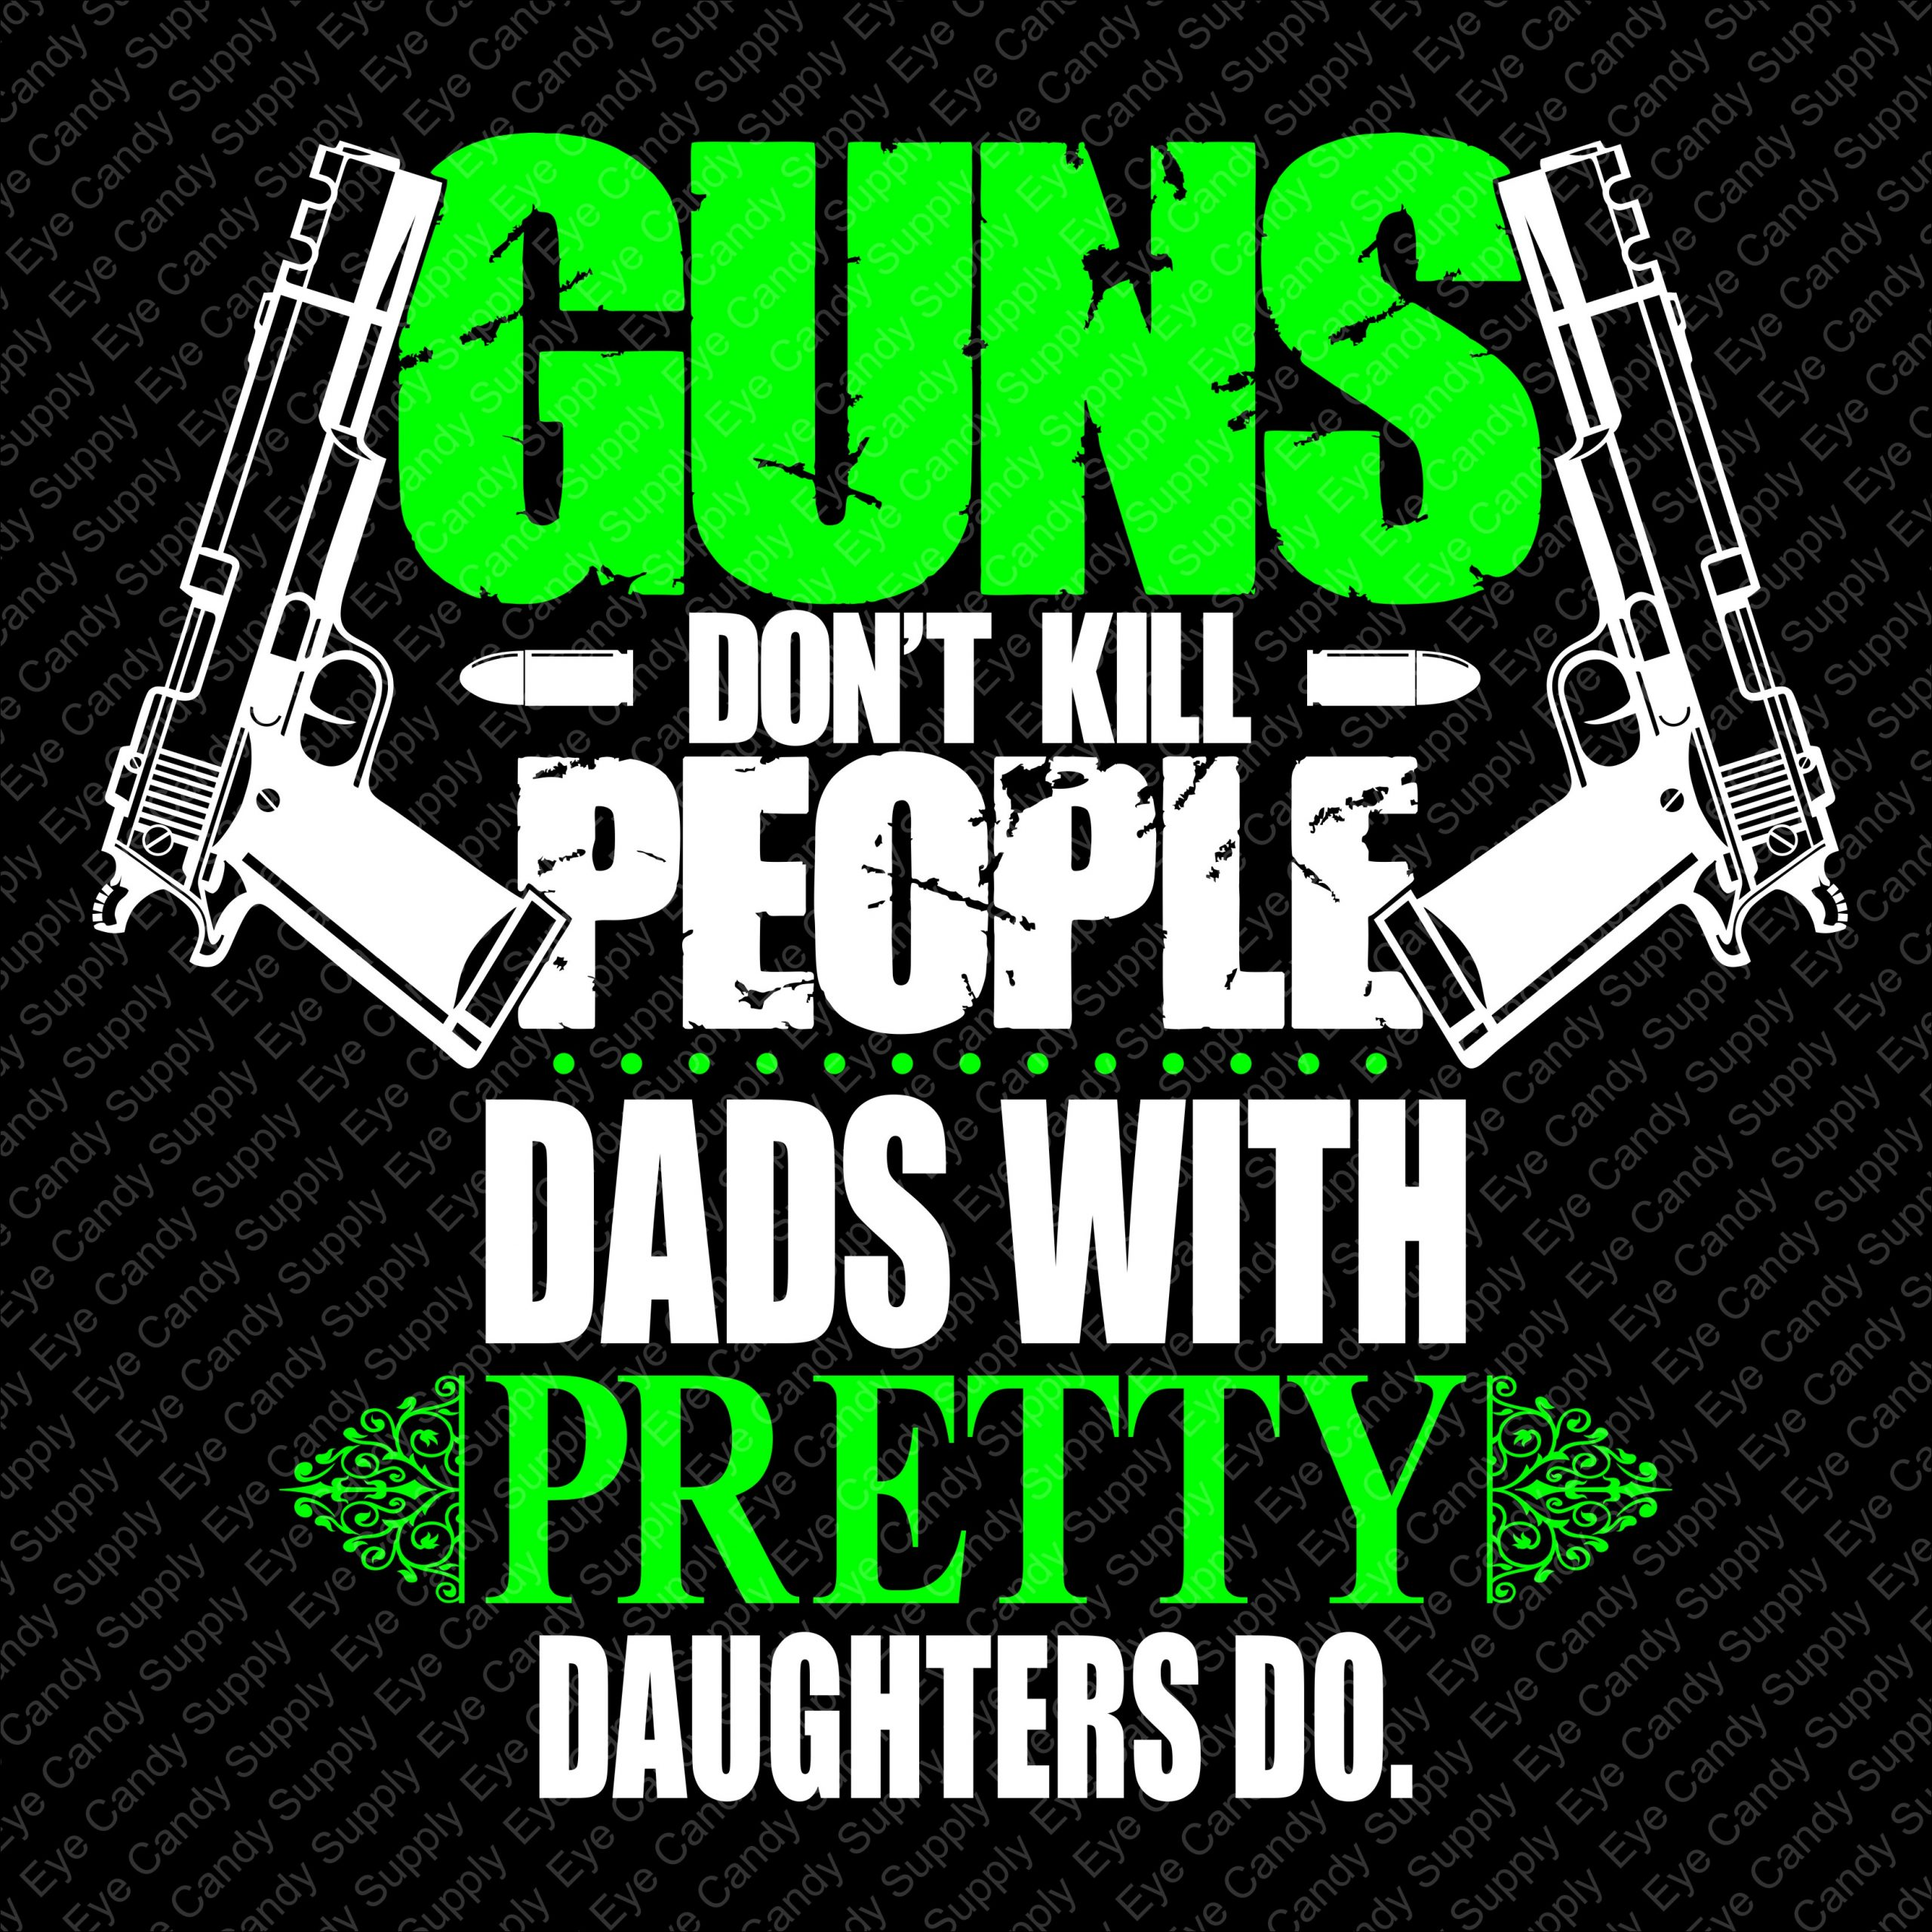 Guns don't kill people. Dads with pretty daughters do.